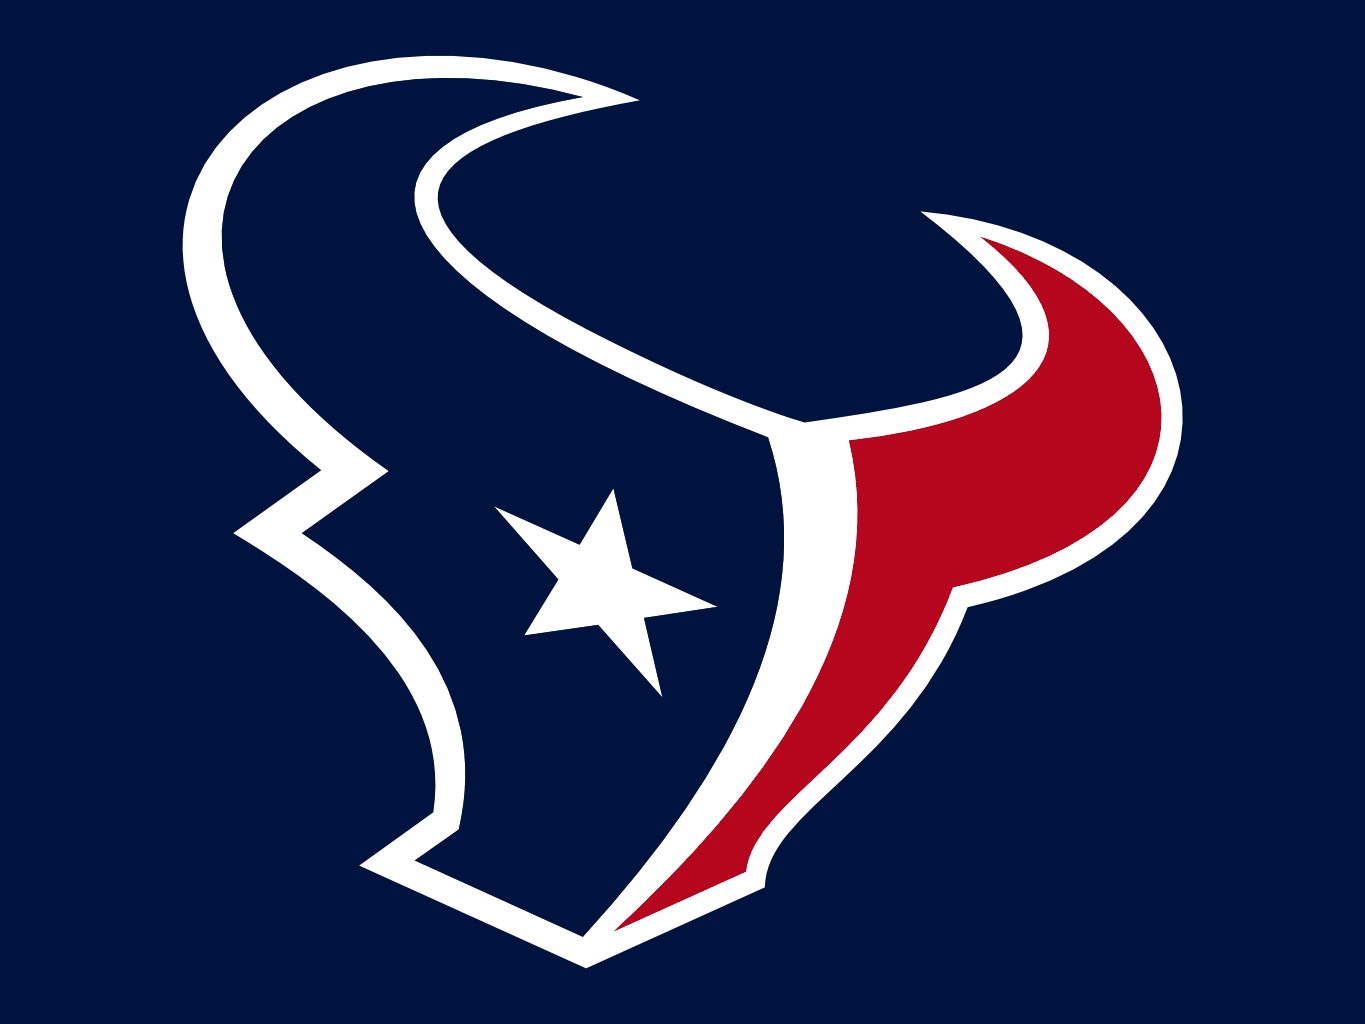 Houston Texans, NFL, Football